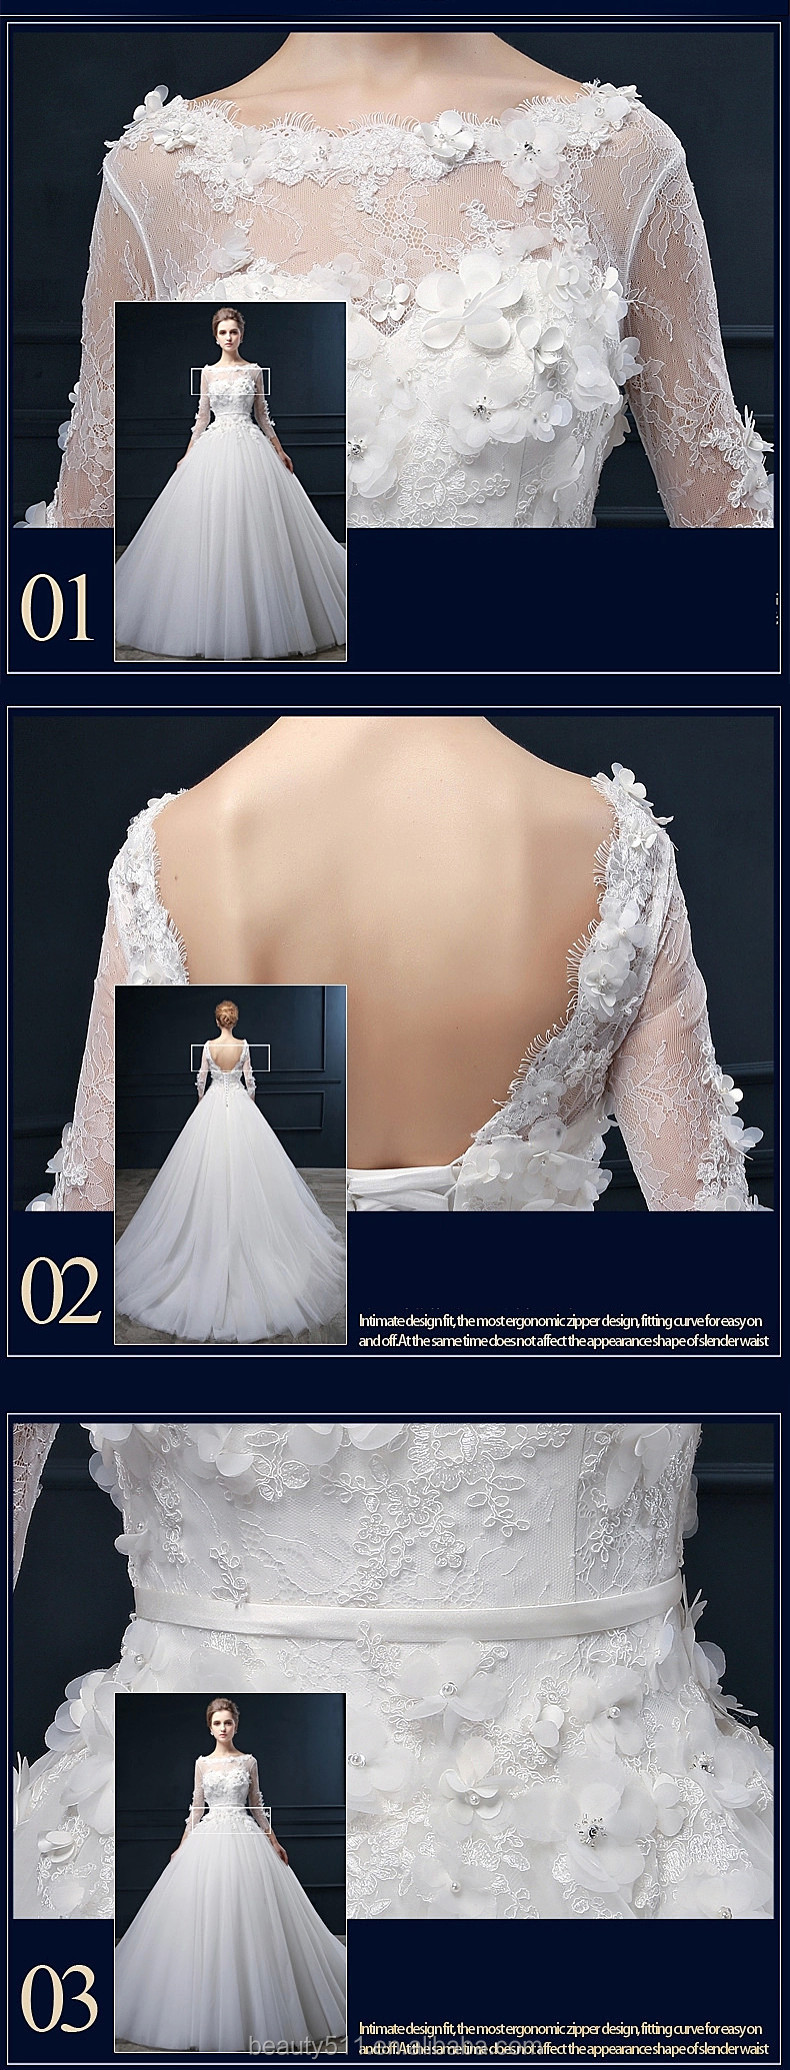 Latest Design Appliqued Flowers A-line Scoop Long Sleeve Floor-length Bridal Gown Lace Wedding dresses WD1861